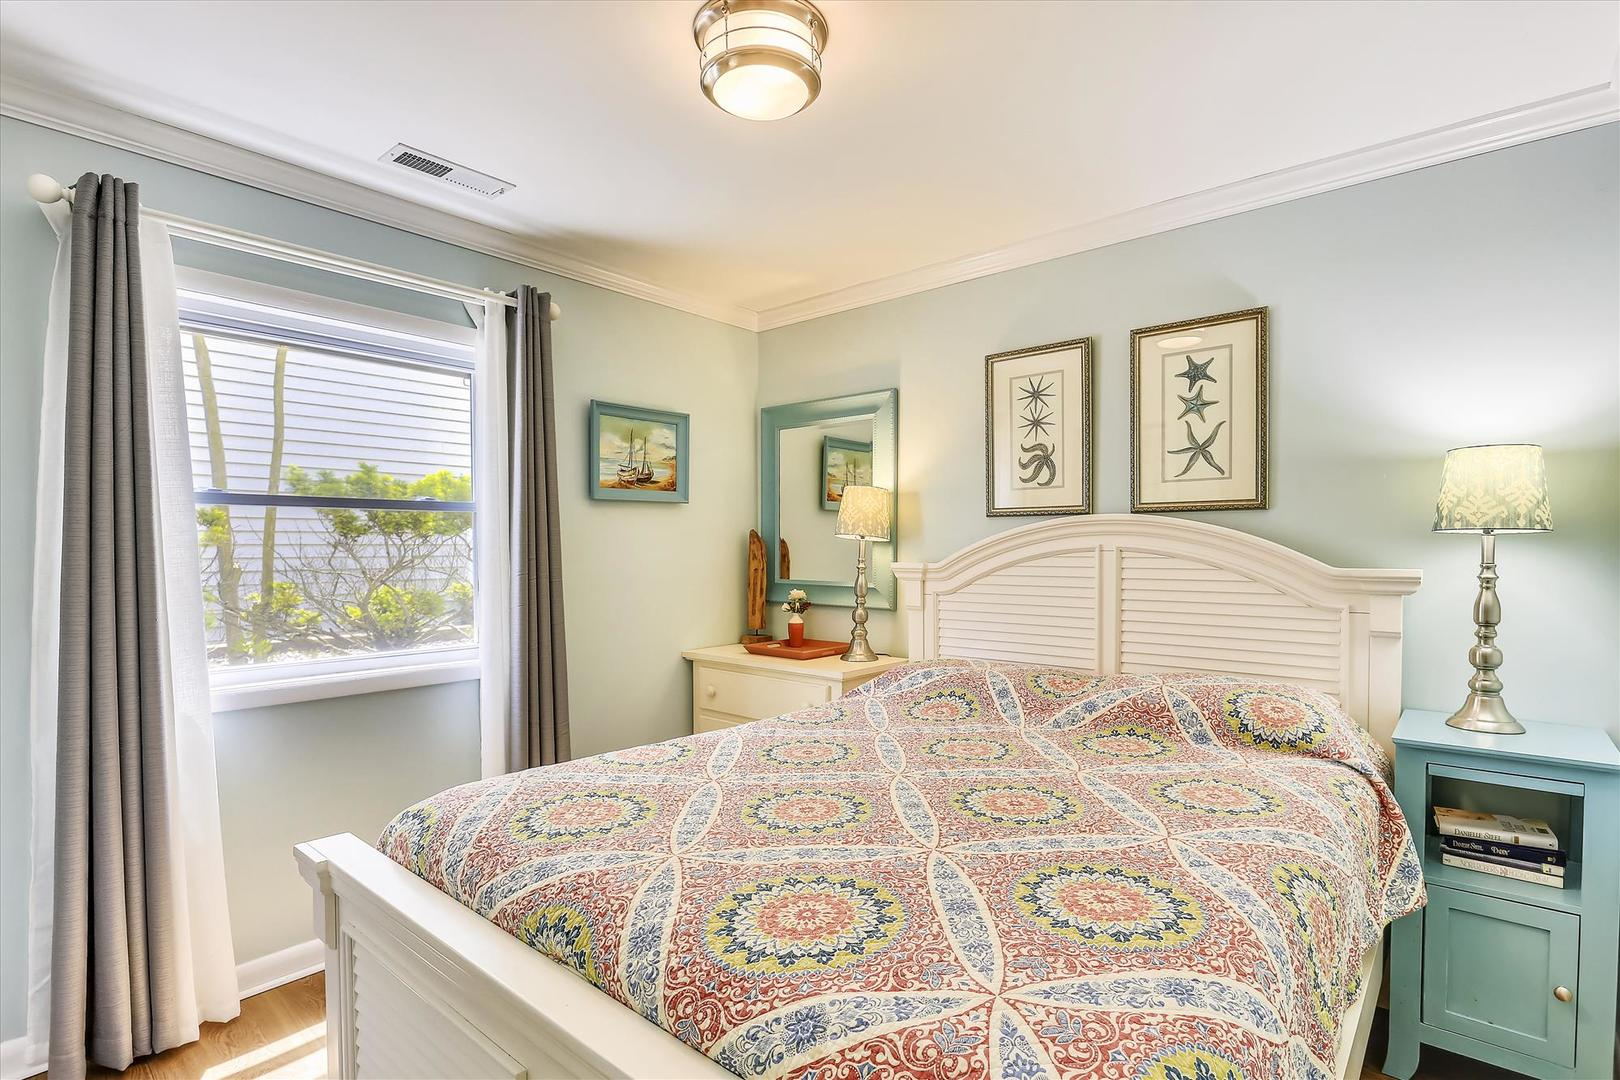 Cinnamon Teal 9 - Queen Bedroom on First Floor